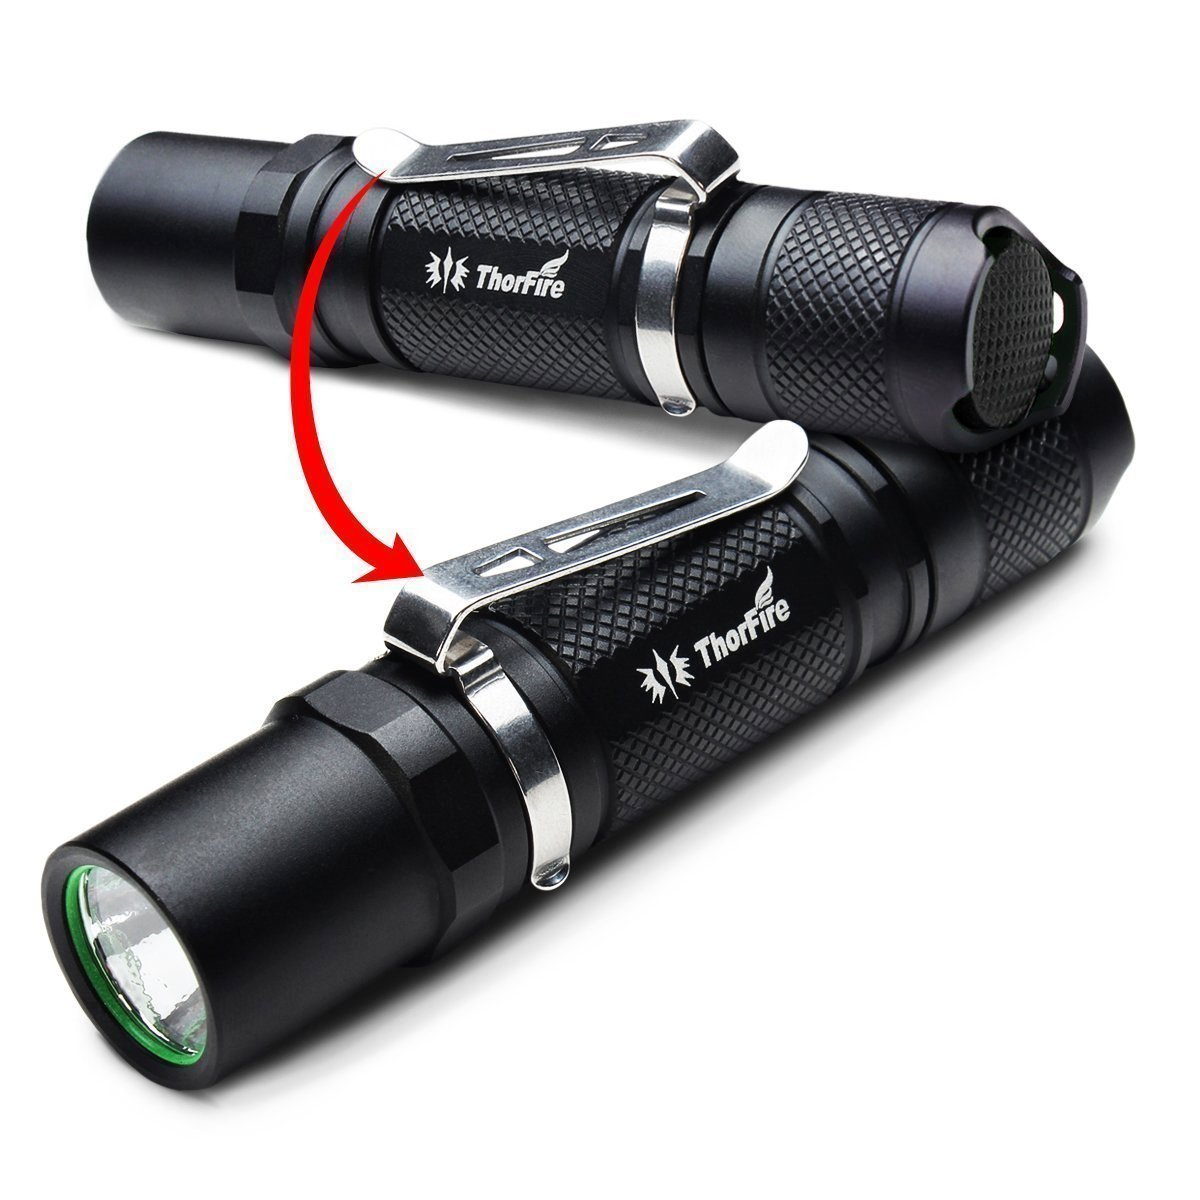 ThorFire Mini Flashlight, 500 Lumen Professional EDC Tactical Light with Strobe, Compact TG06S Powered by AA or 14500 Battery (Not Included) by Thorfire (Image #5)